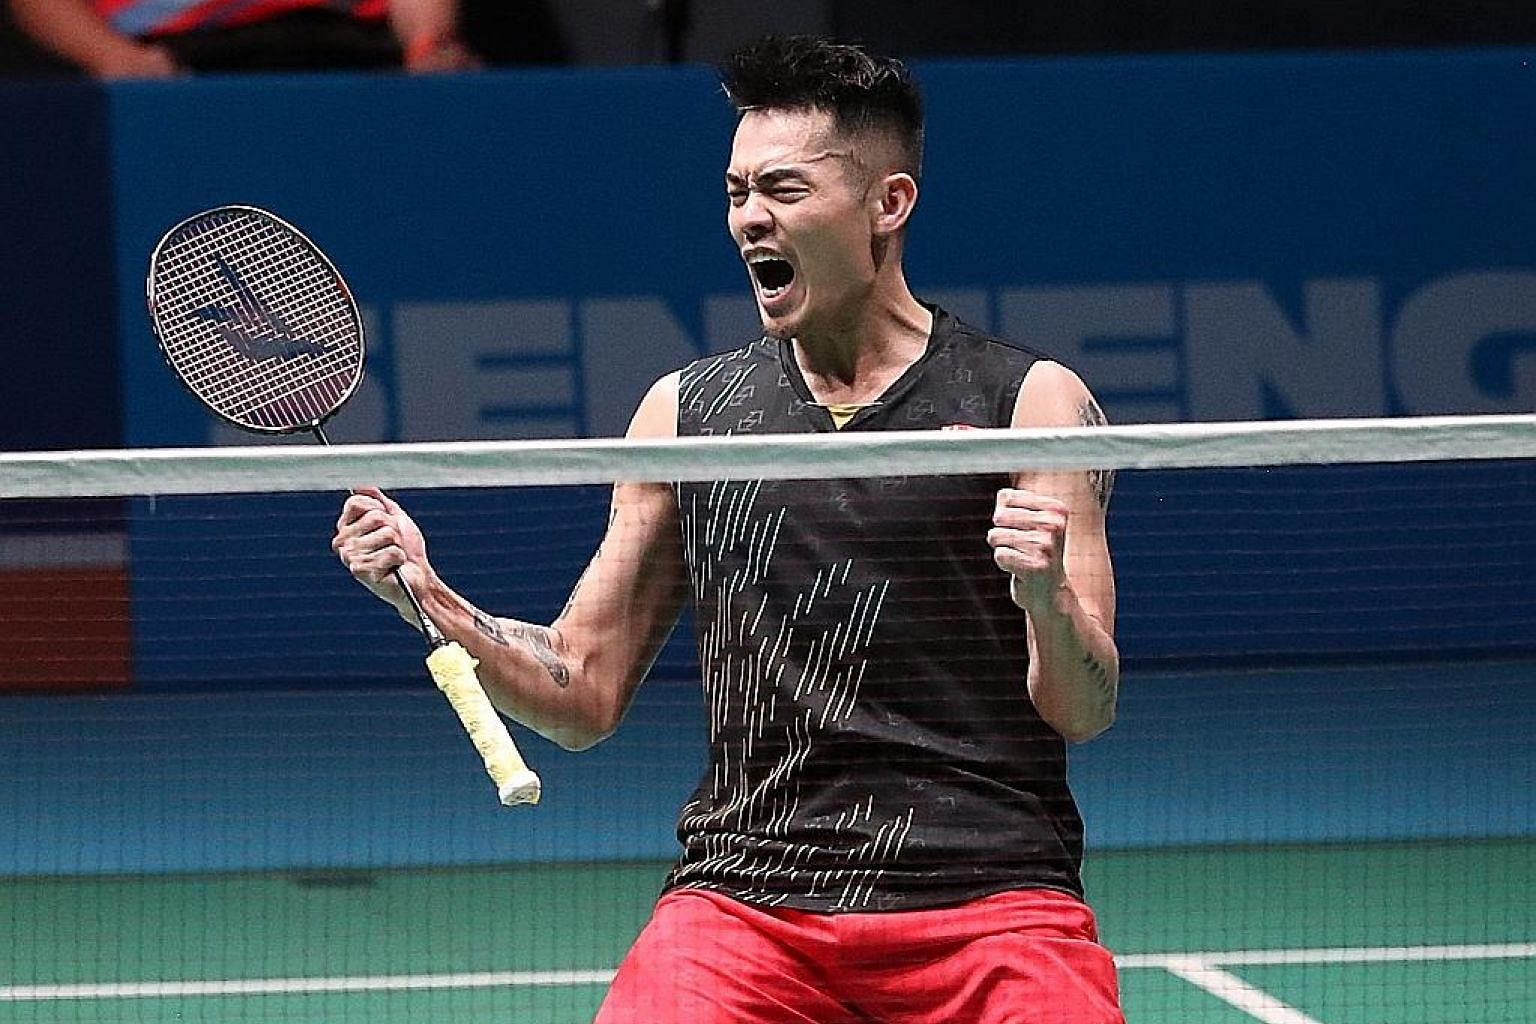 Chinese veteran Lin Dan is thrilled after upsetting Chinese Taipei third seed Chou Tien-chen in the first round of the Malaysia Open on Wednesday. He needs to overtake one of his two higher-ranked teammates to stand a chance of playing in his fifth O